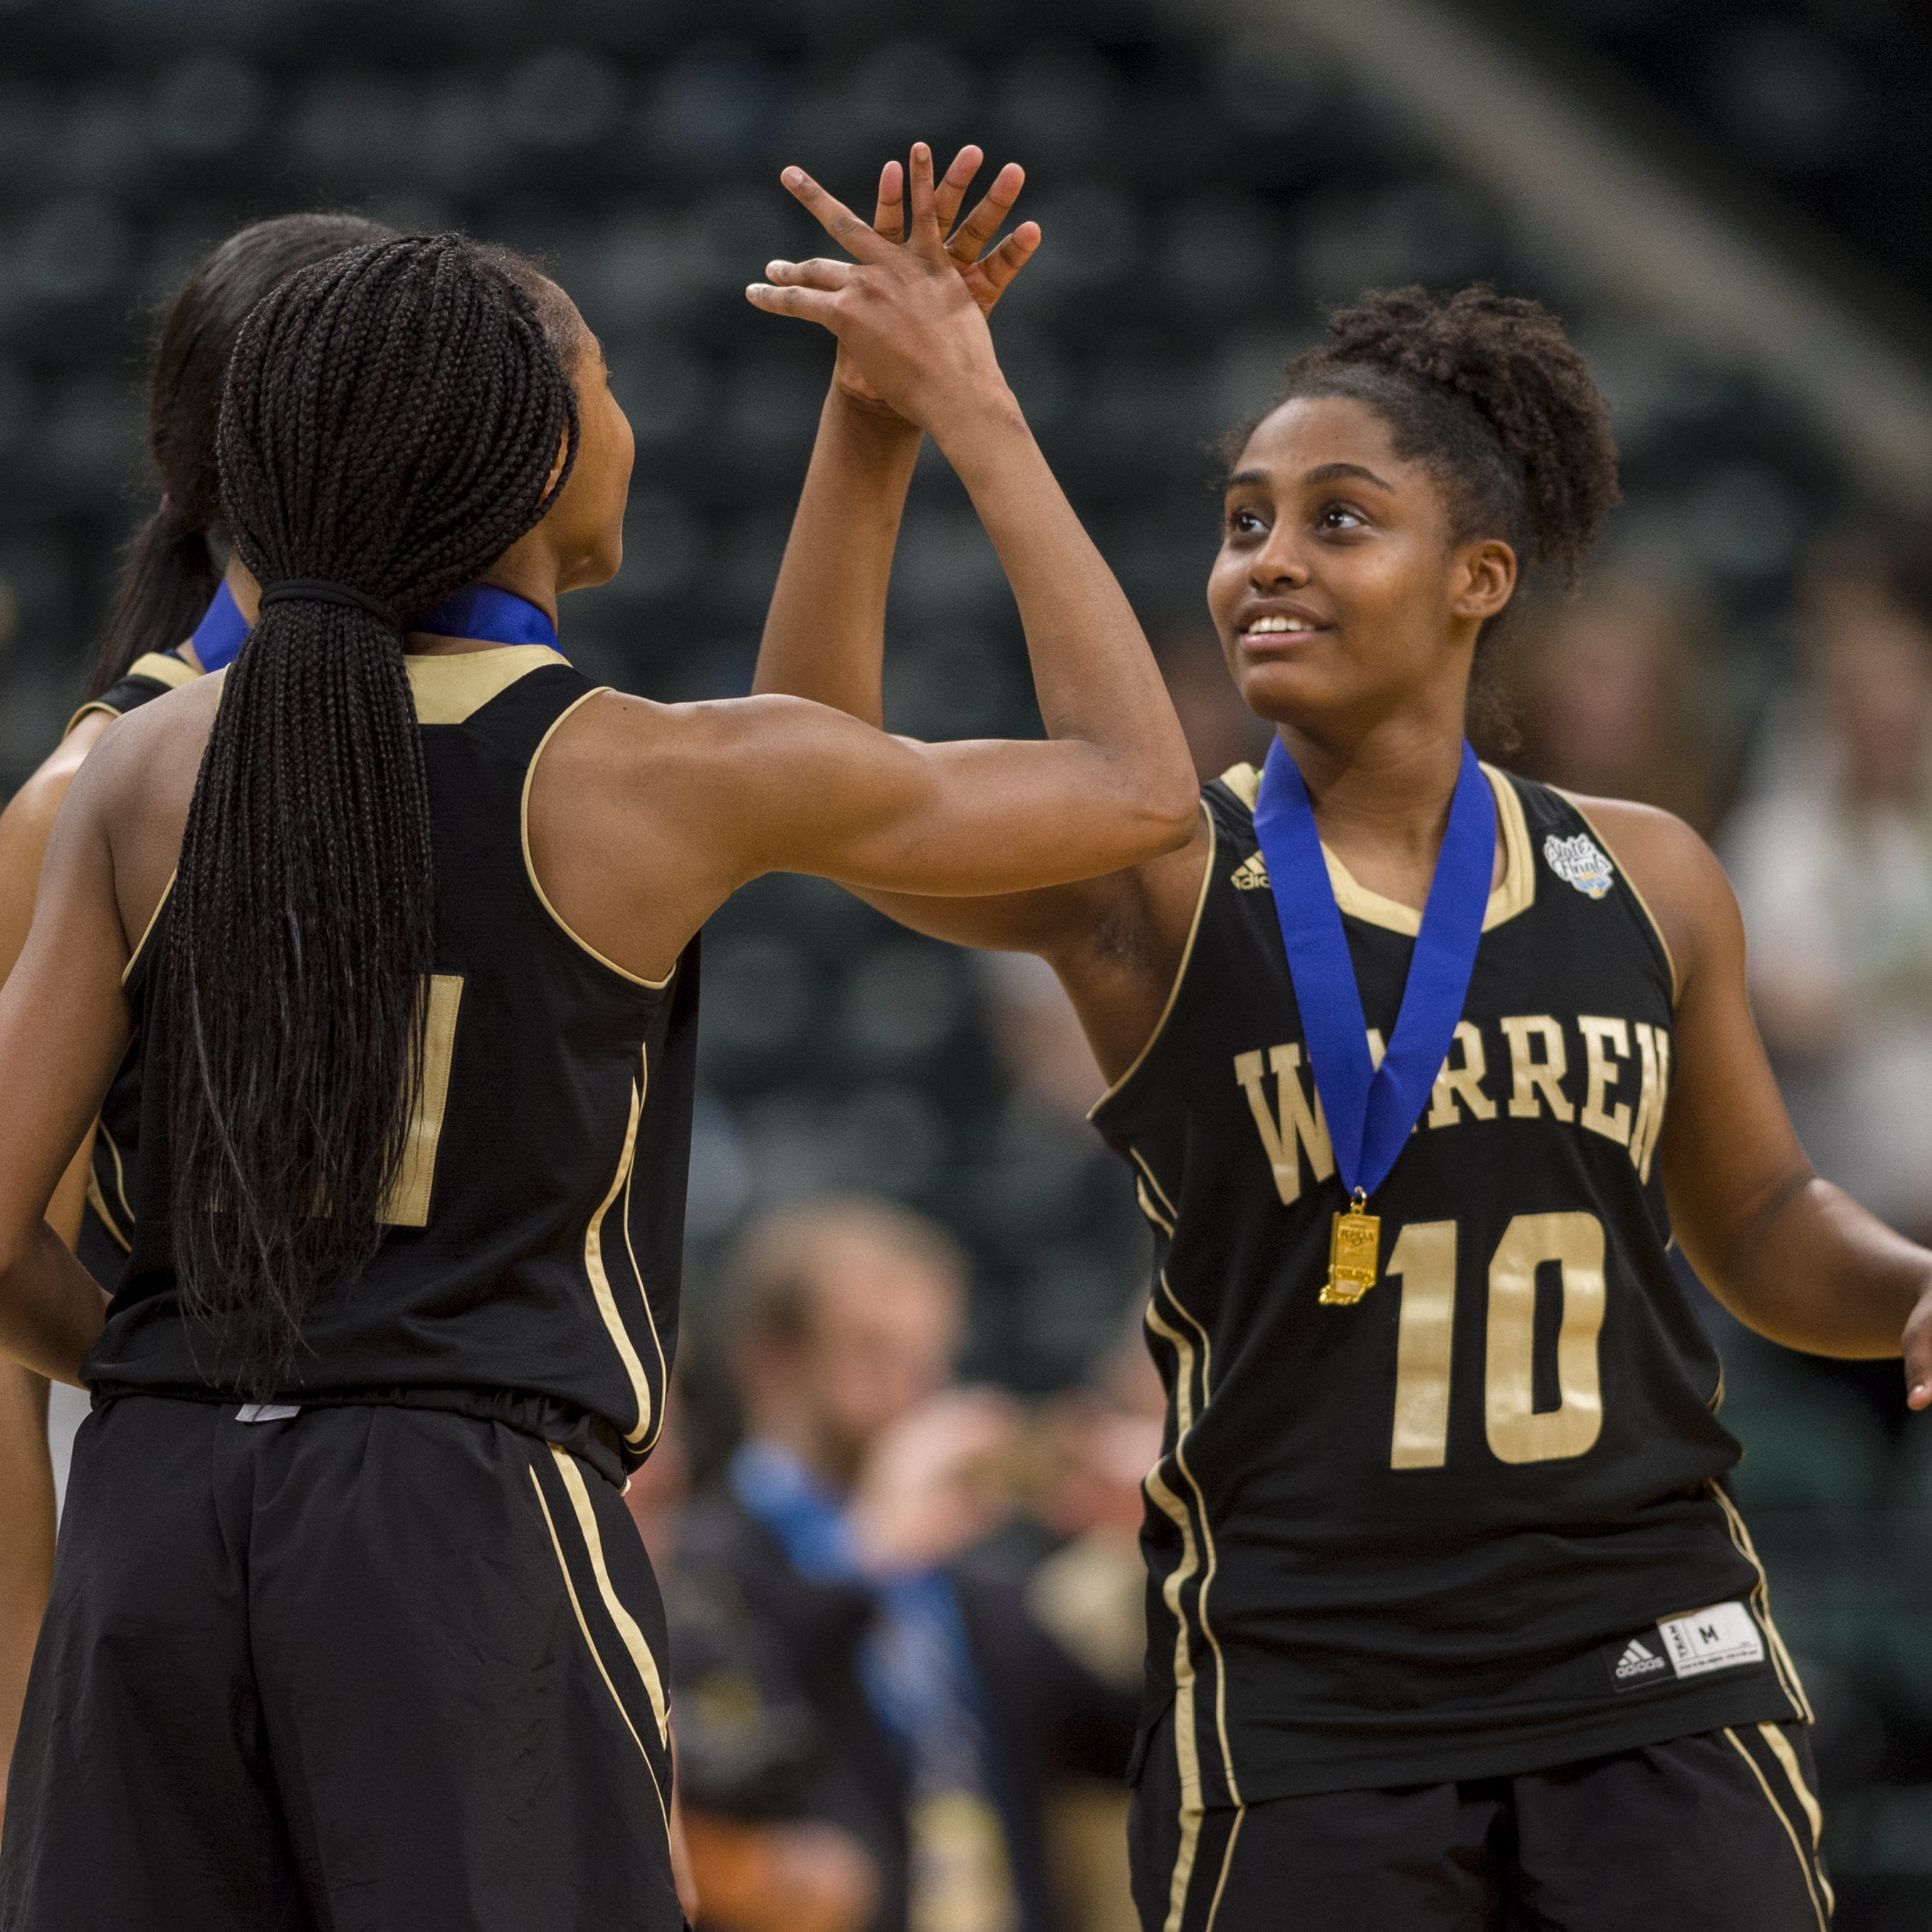 Live blog: Indiana high school girls basketball sectional pairings; Class 3A is complete